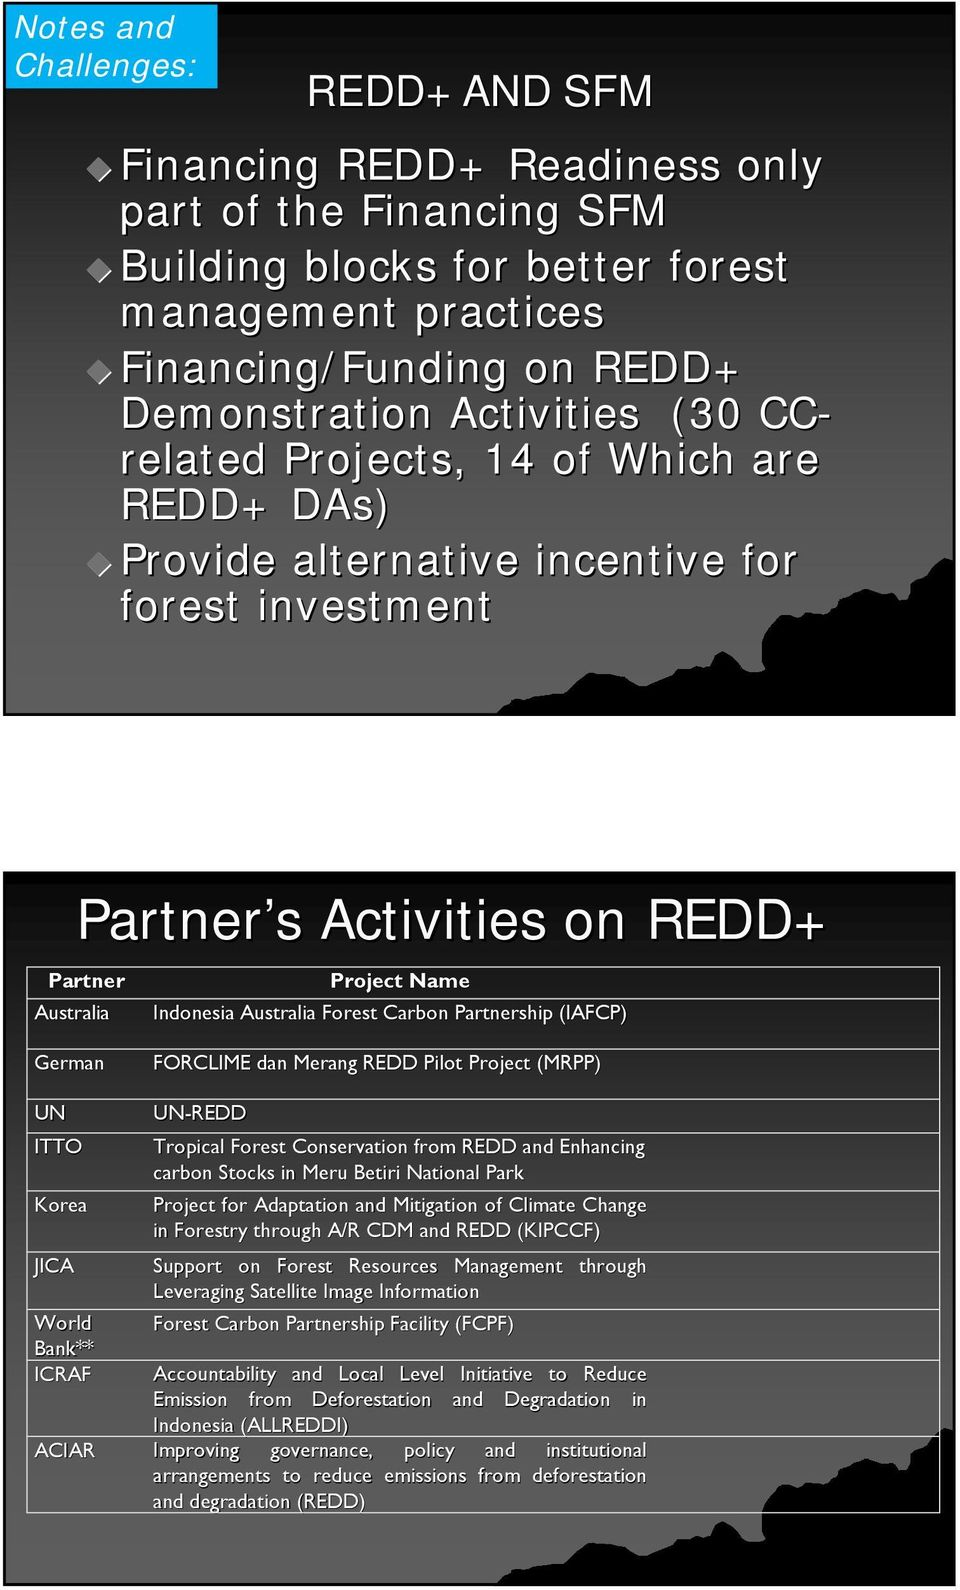 Carbon Partnership (IAFCP) German FORCLIME dan Merang REDD Pilot Project (MRPP) UN ITTO Korea JICA UN-REDD Tropical Forest Conservation from REDD and Enhancing carbon Stocks in Meru Betiri National